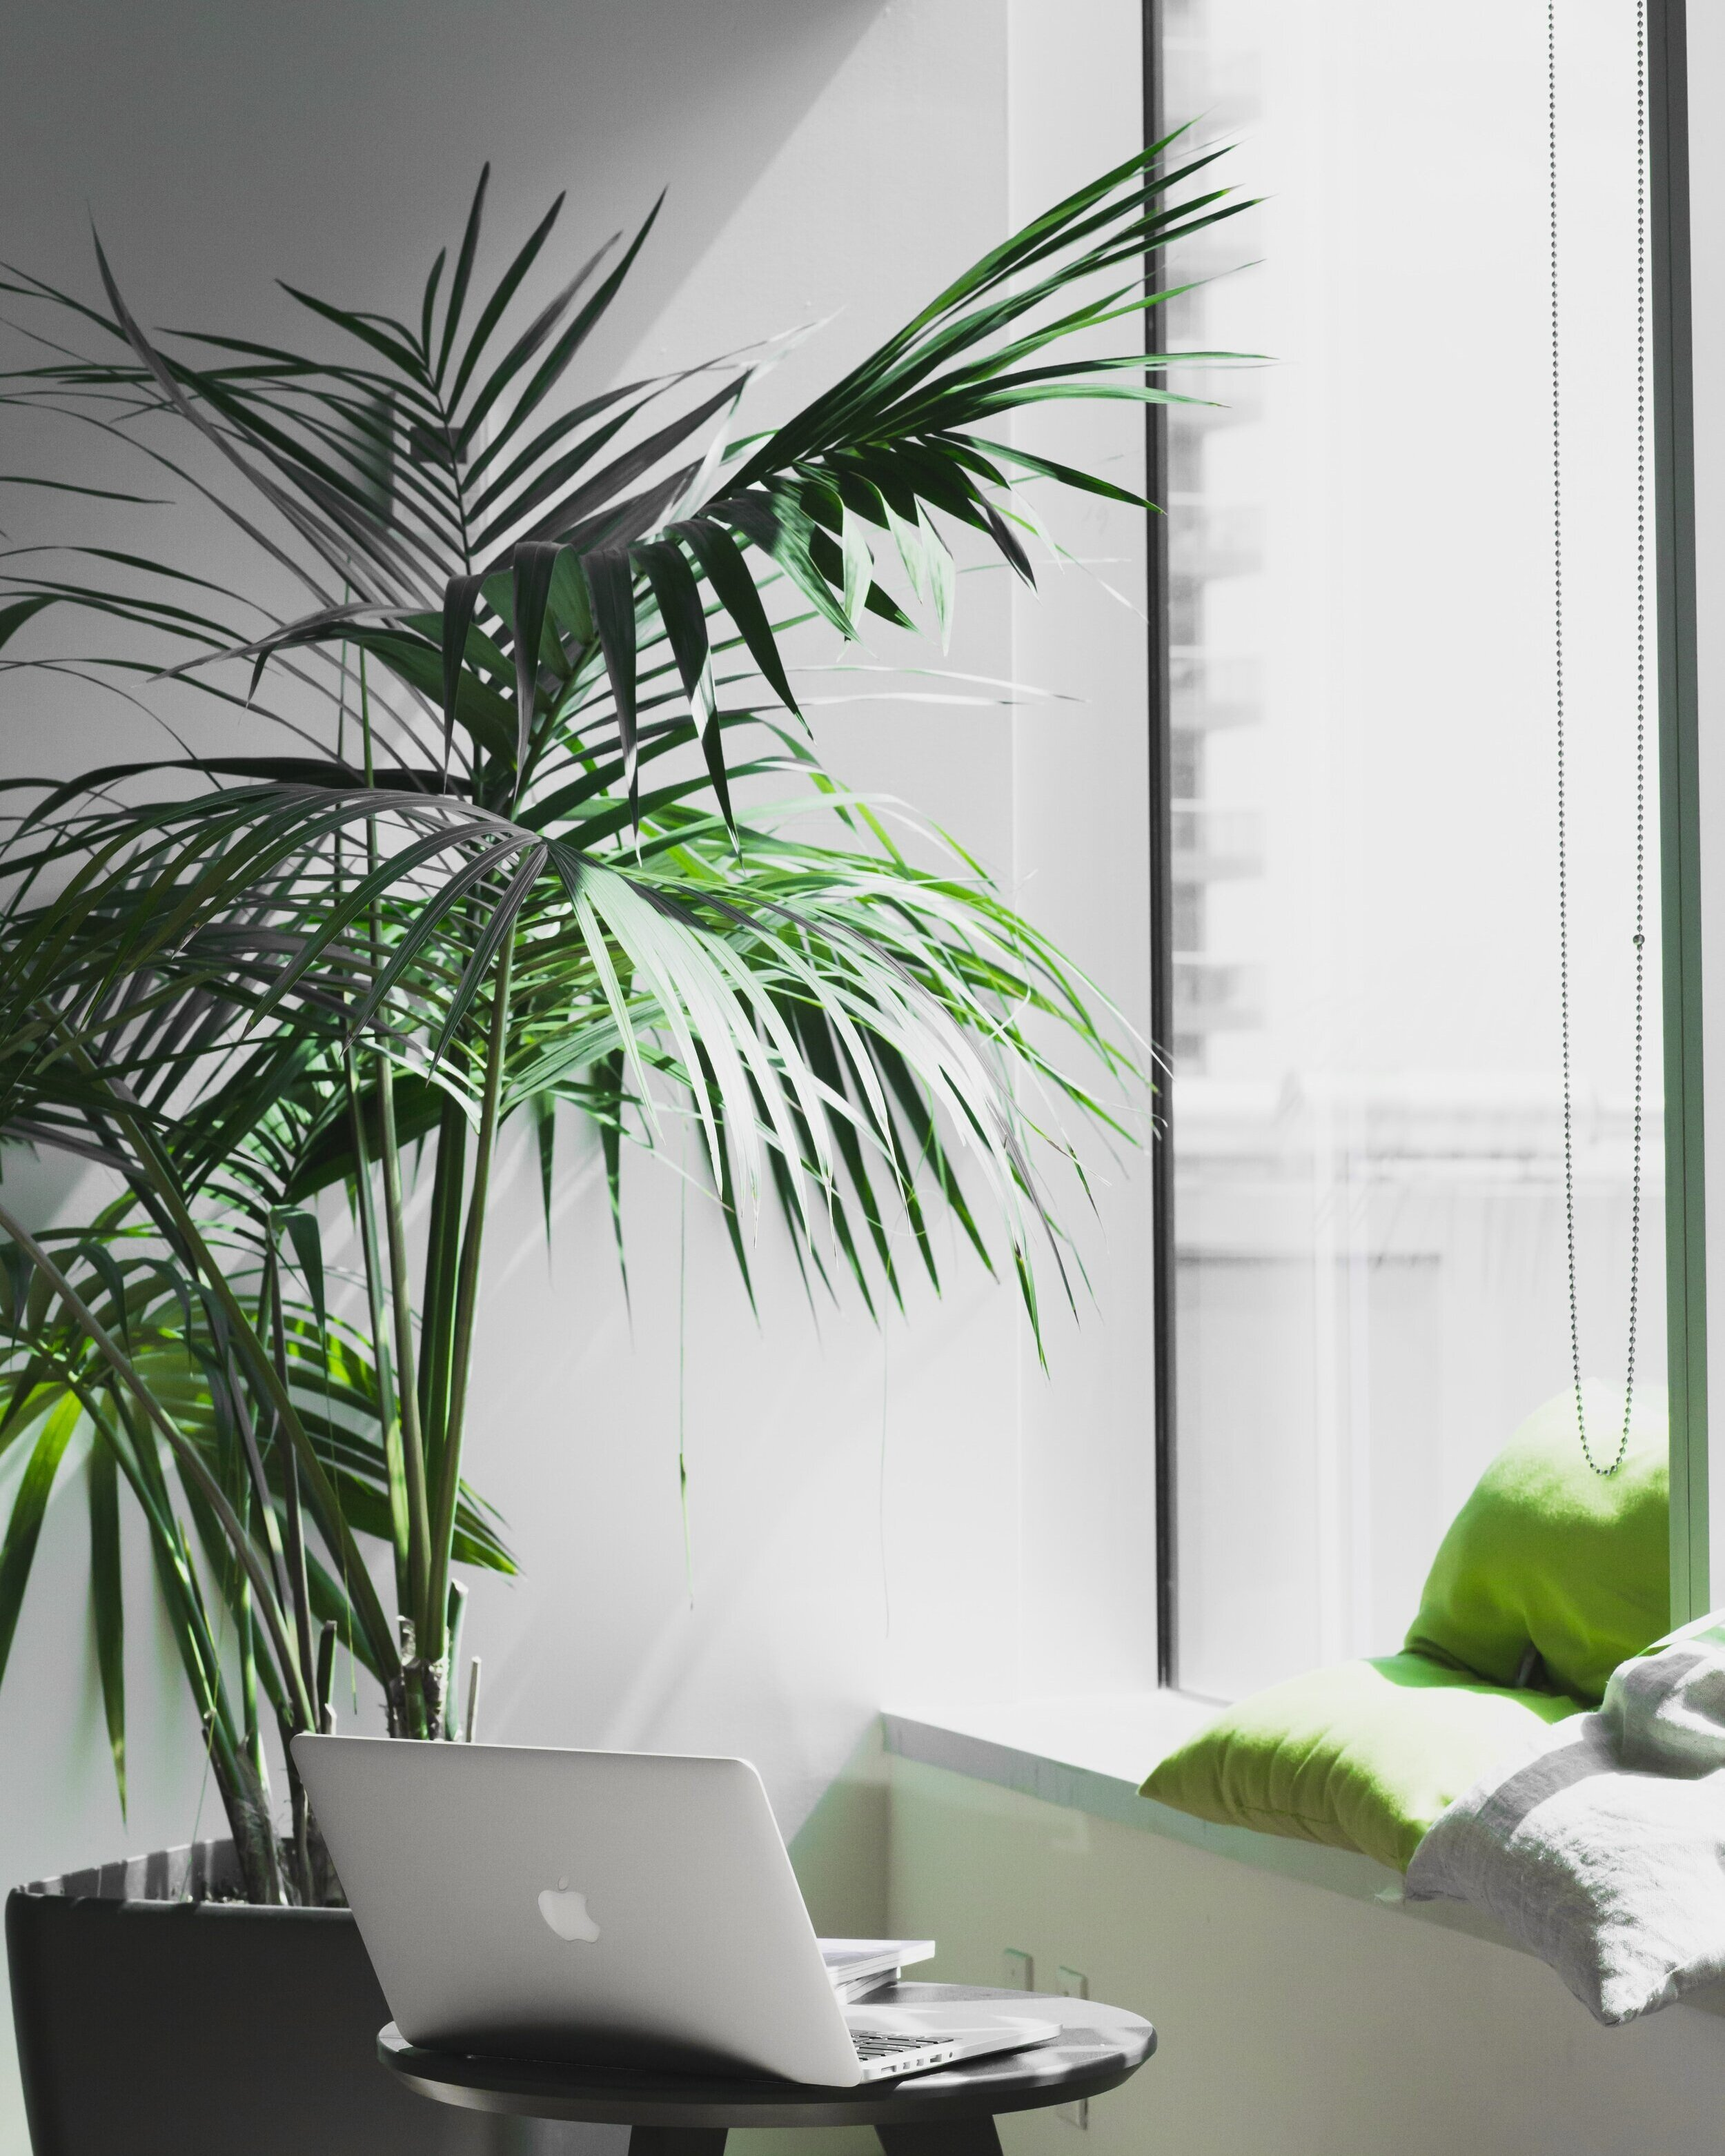 14 Reasons You Need Plants In The Office